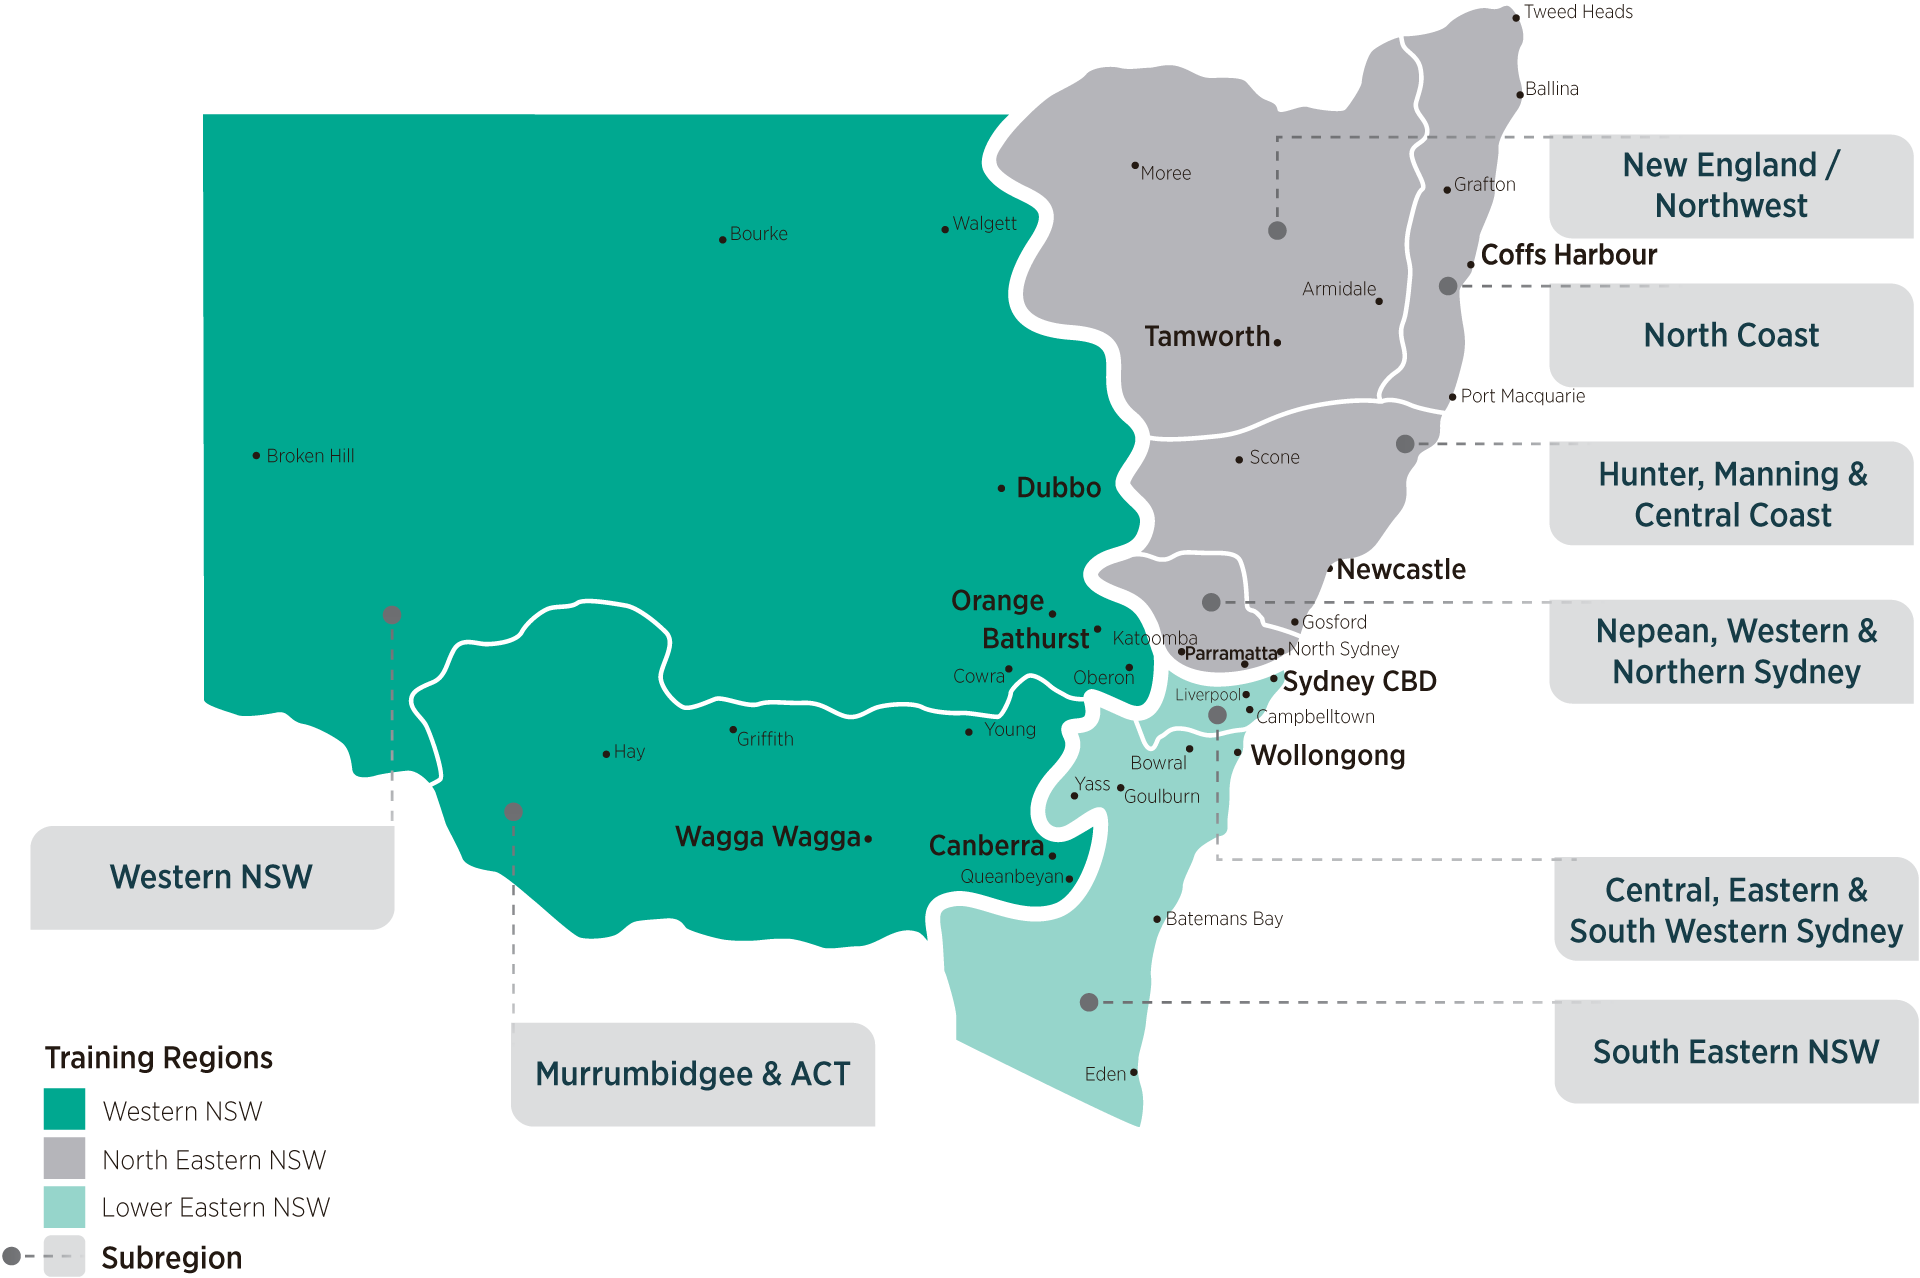 NSWACT-training-regions-and-subregions